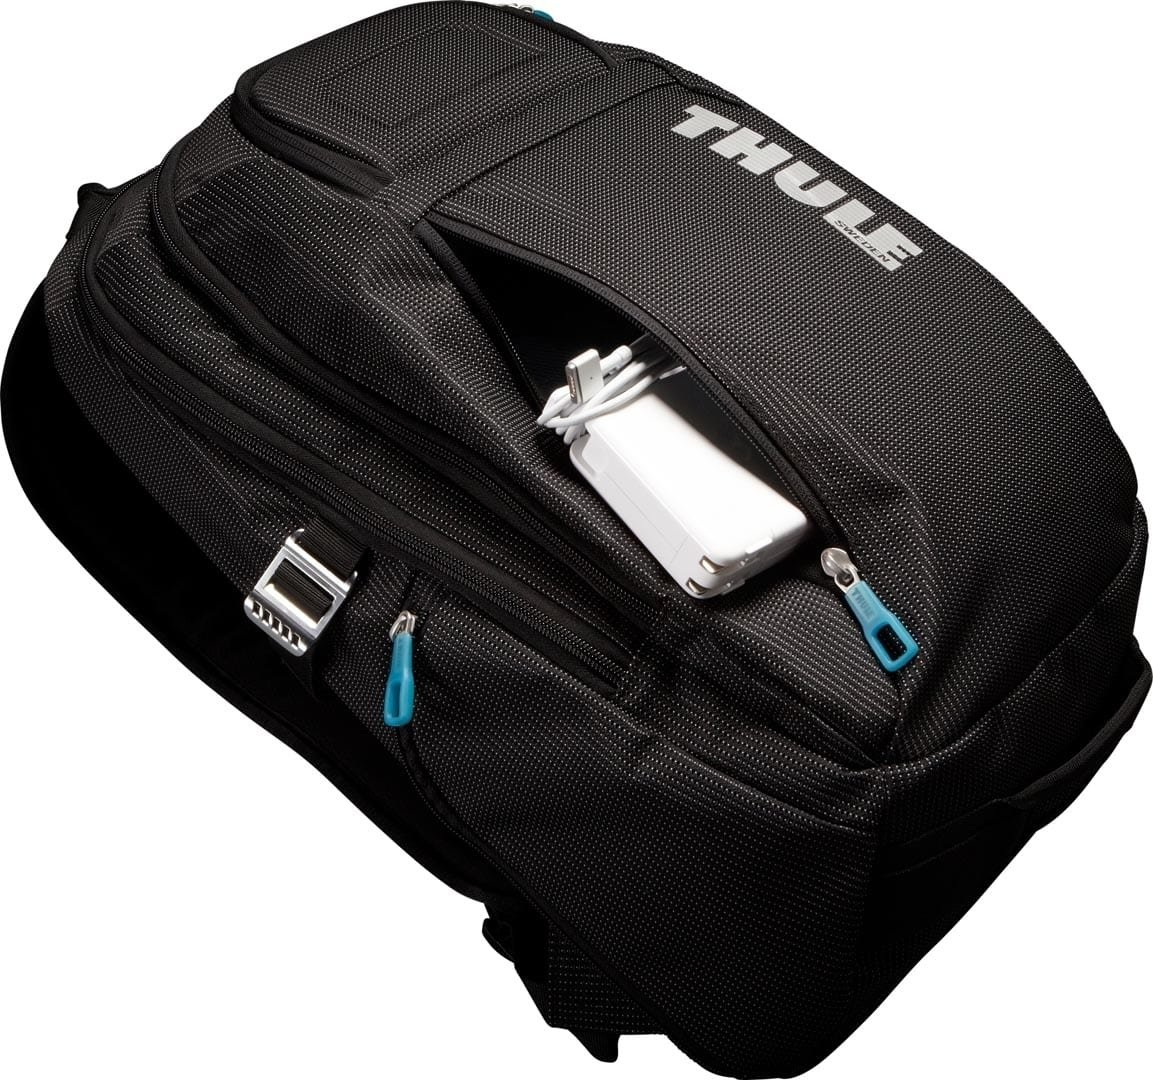 Рюкзак Thule Crossover 21L Black 4 Р2юкзак Thule Crossover 21L Black TH 3201751